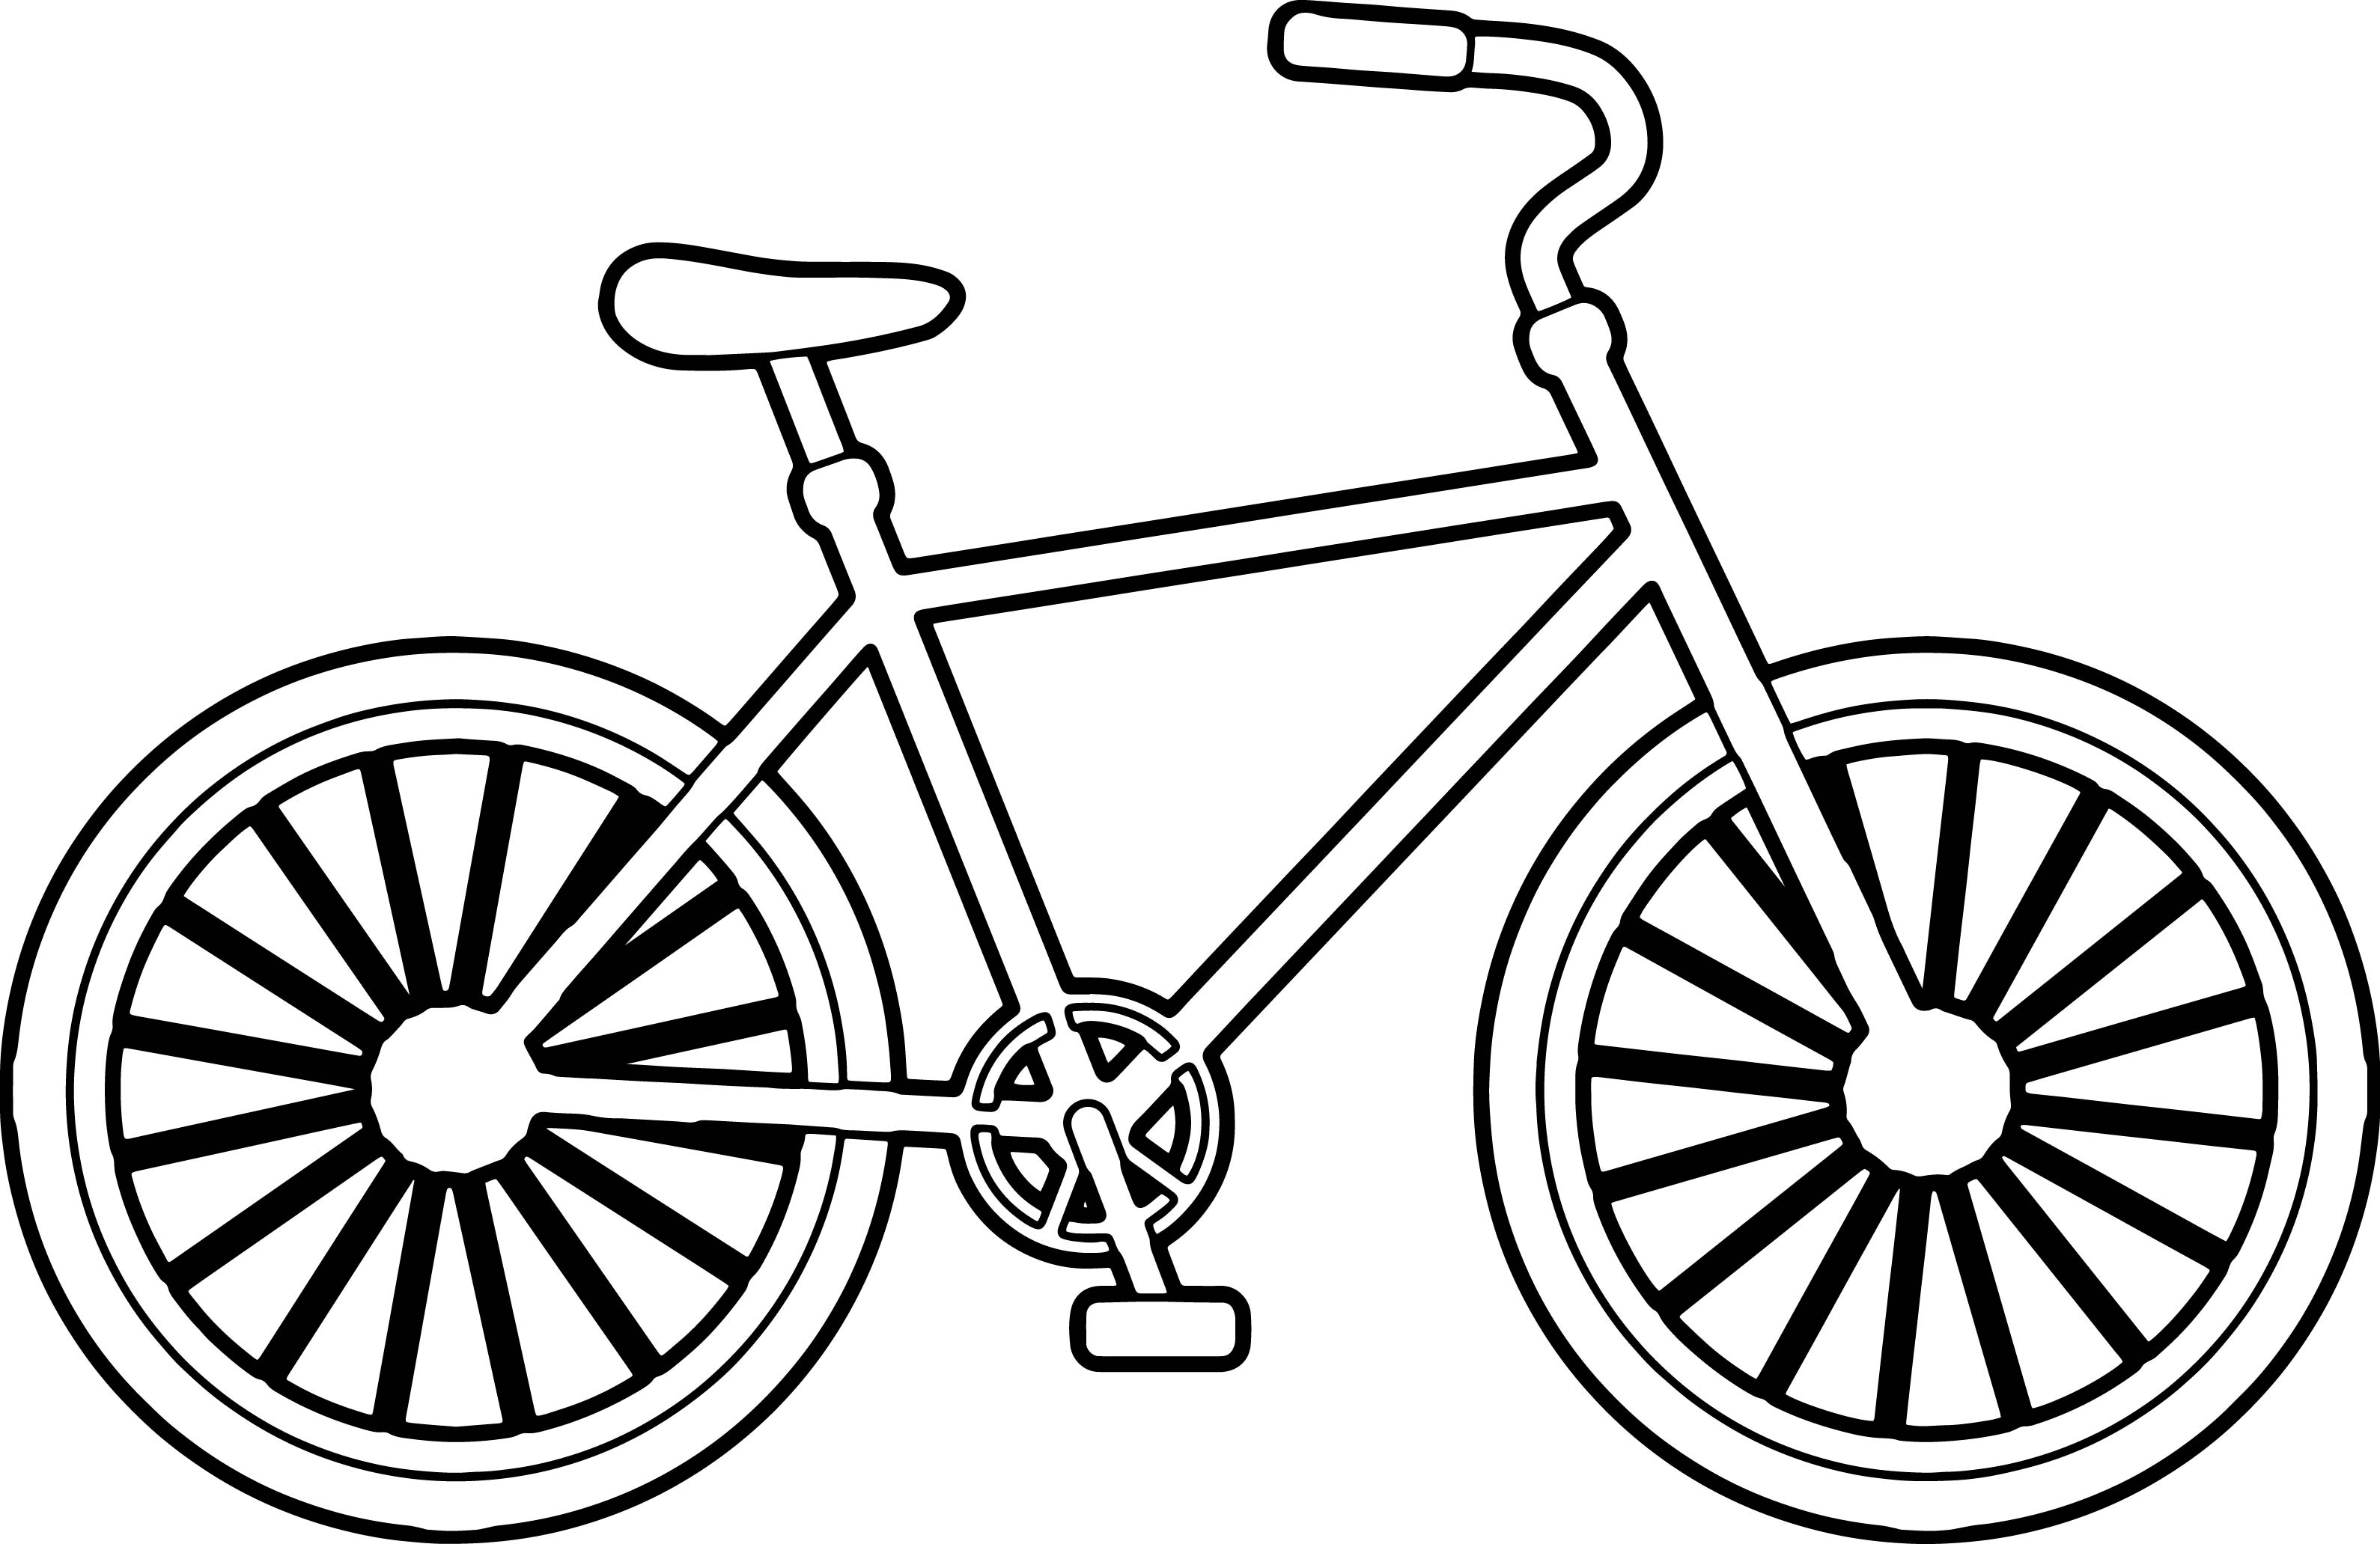 motorcycle simple drawing at getdrawings com